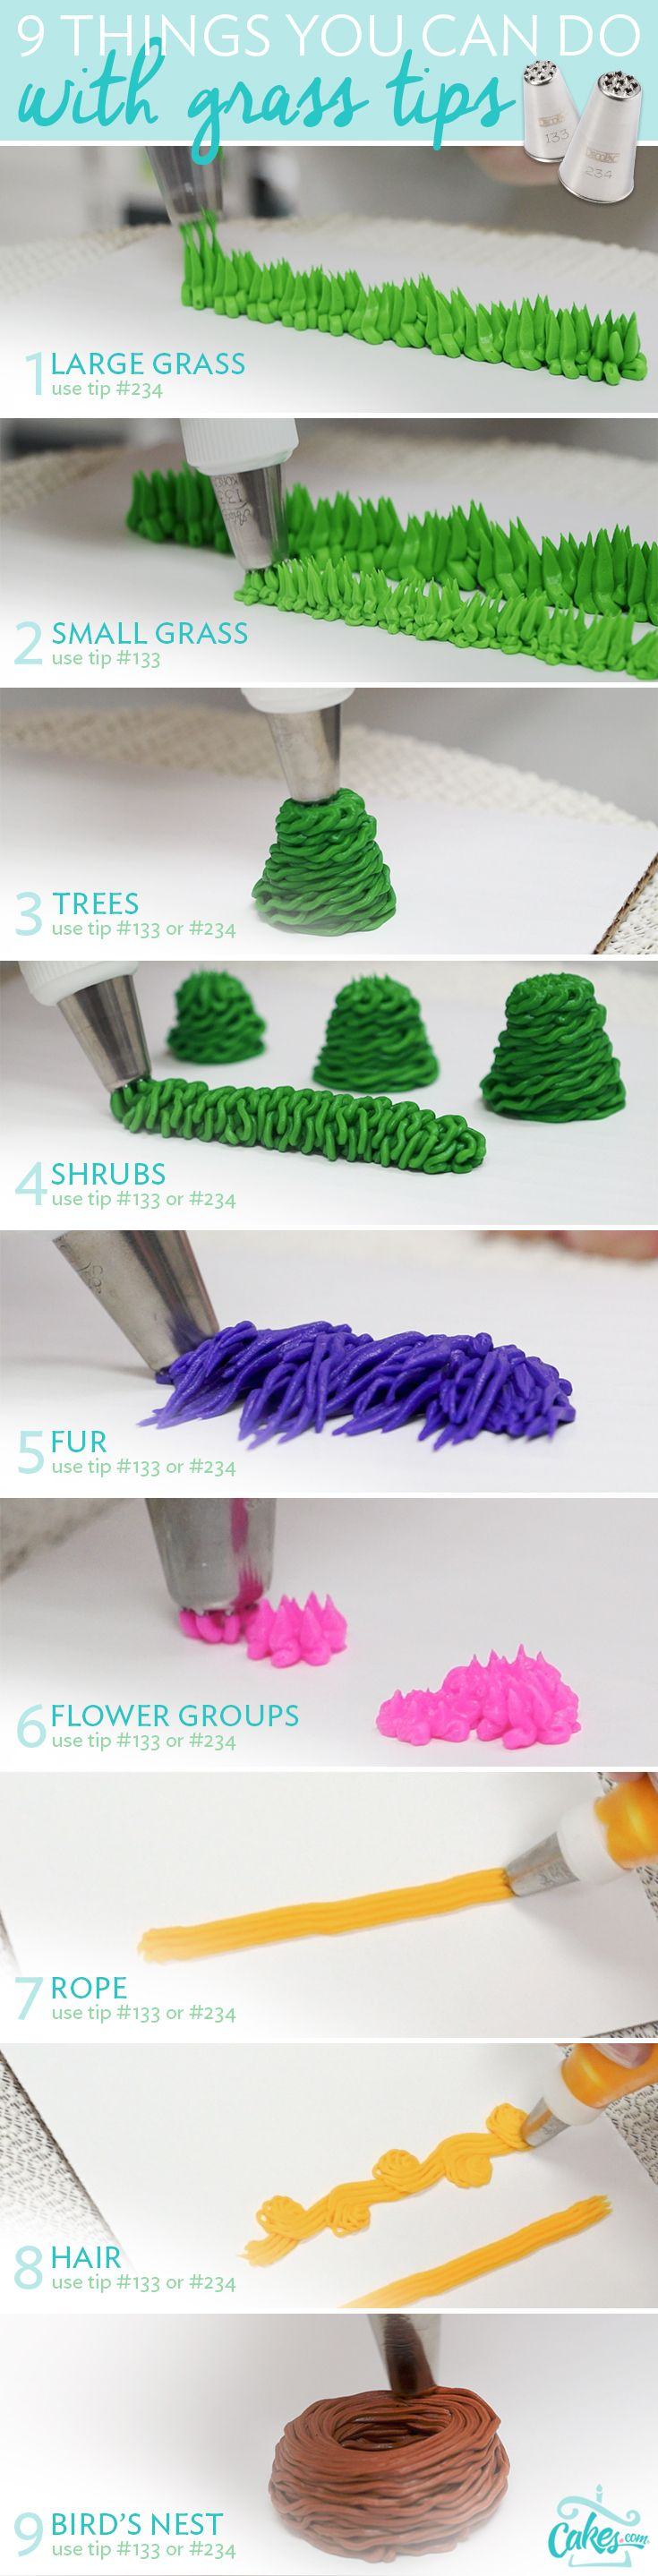 9 ways to use grass piping tips - For all your cake decorating supplies, please visit craftcompany.co.uk